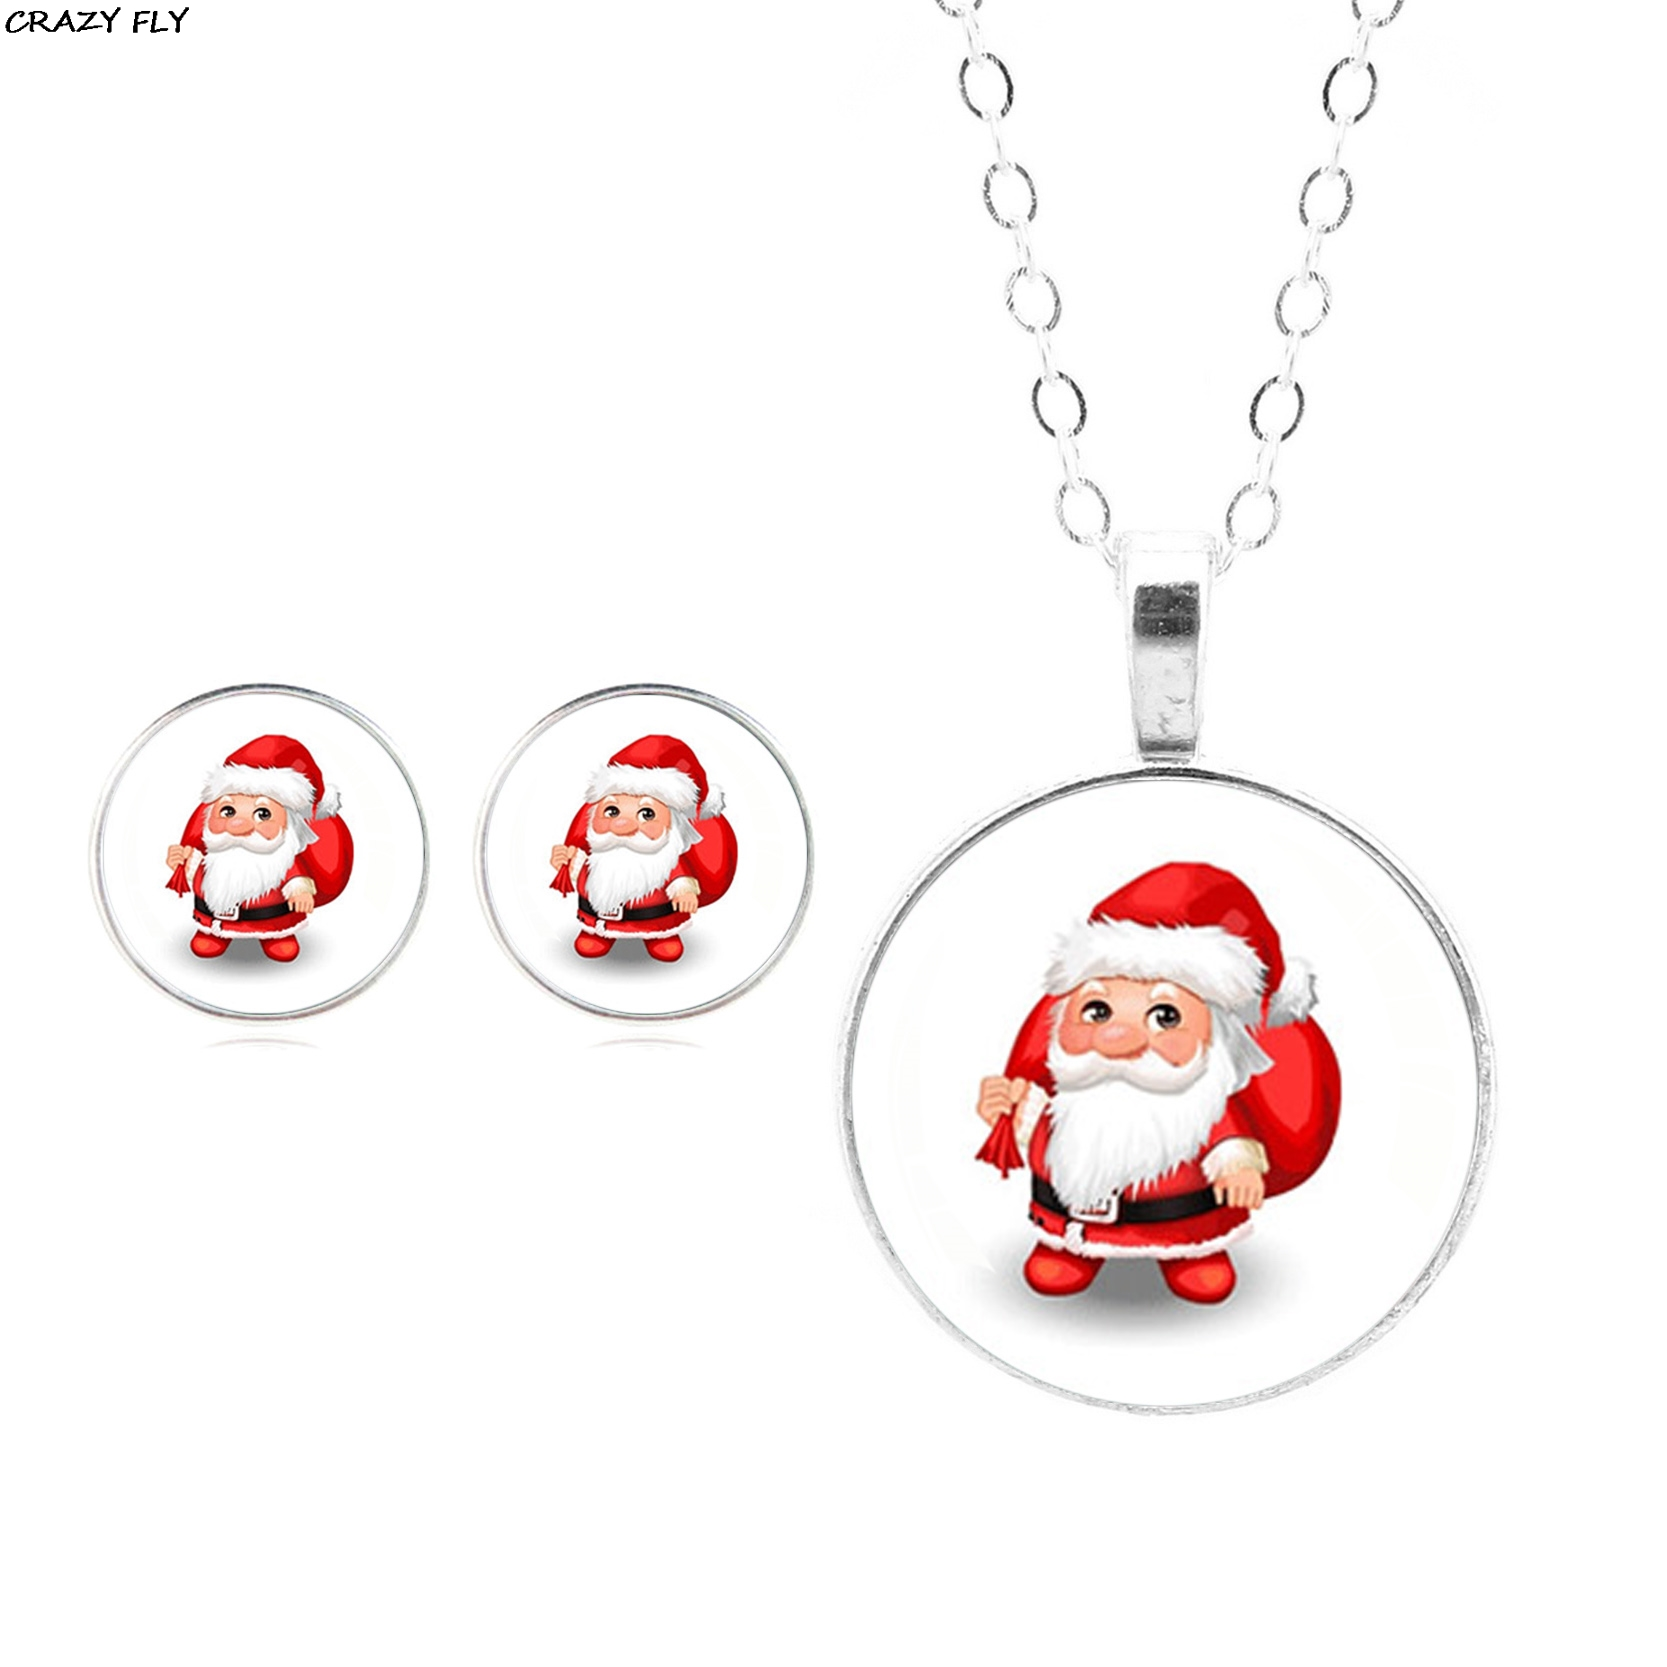 CRAZY FLY 2018 Christmas Gift 3 Pcs/Set Santa Claus Jewelry Necklace Pendant Glass Cabochon Stud Earrings Fashion Accessories